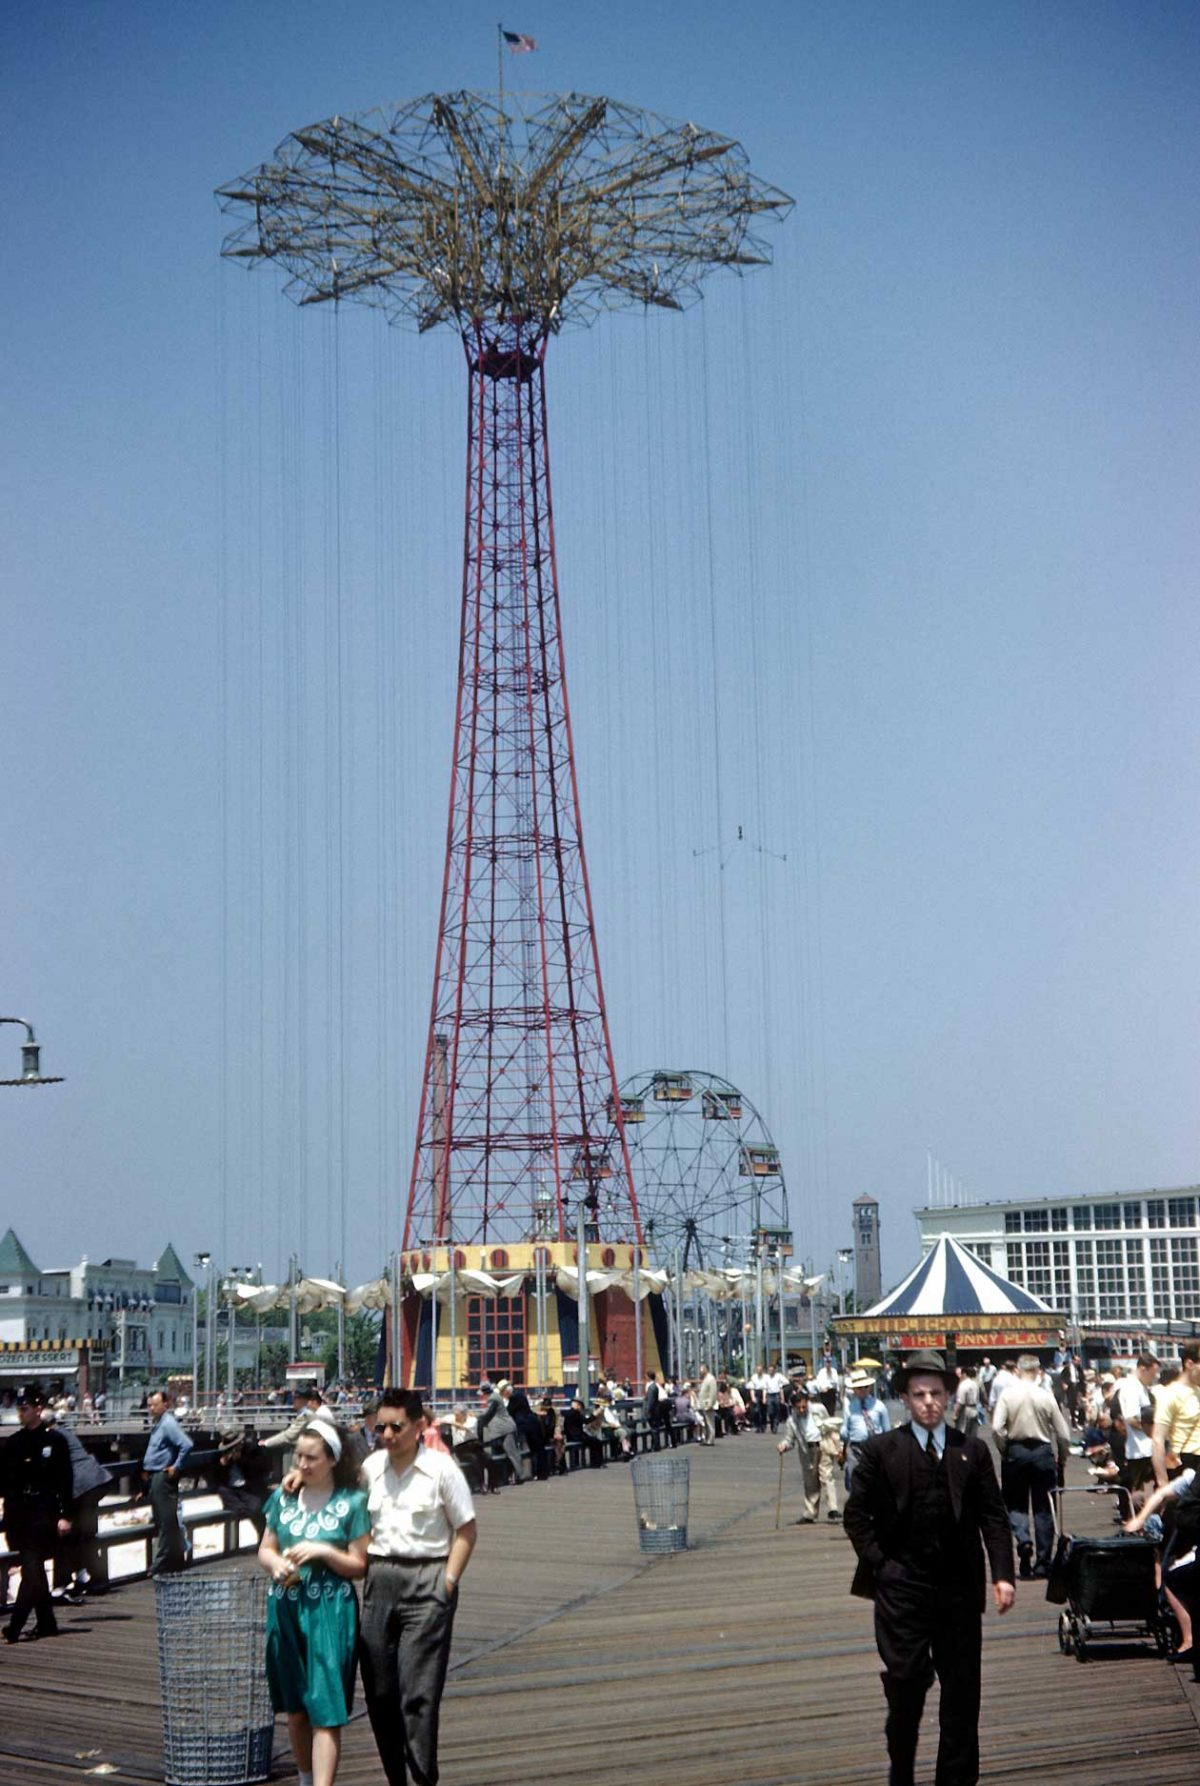 NEW YORK - CIRCA 1948: A view of the Coney Island boardwalk and the famous Parachute Jump in Steeplechase Park (it was built as part of the 1939 New York World's Fair and moved here in 1941) circa 1948 in Brooklyn, New York City, New York. (Photo by Sherman Oaks Antique Mall/Getty Images)